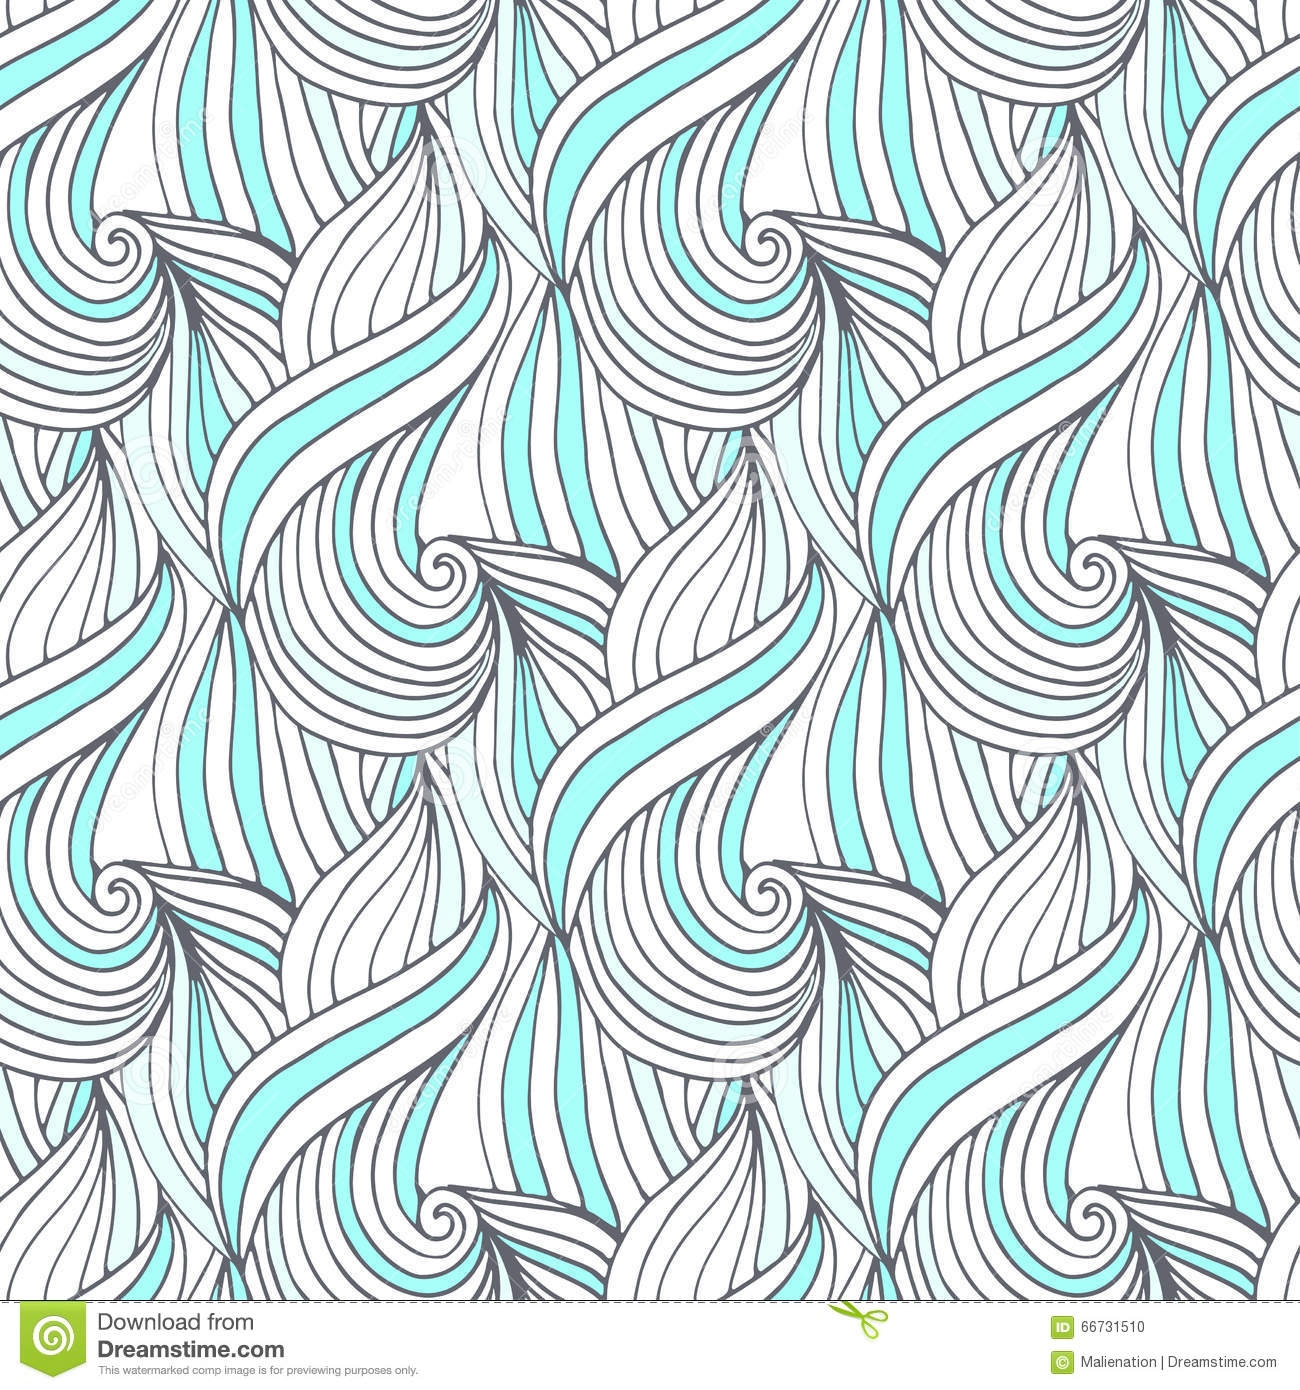 20 Hawaii Coloring Pages Selection | FREE COLORING PAGES - Part 2